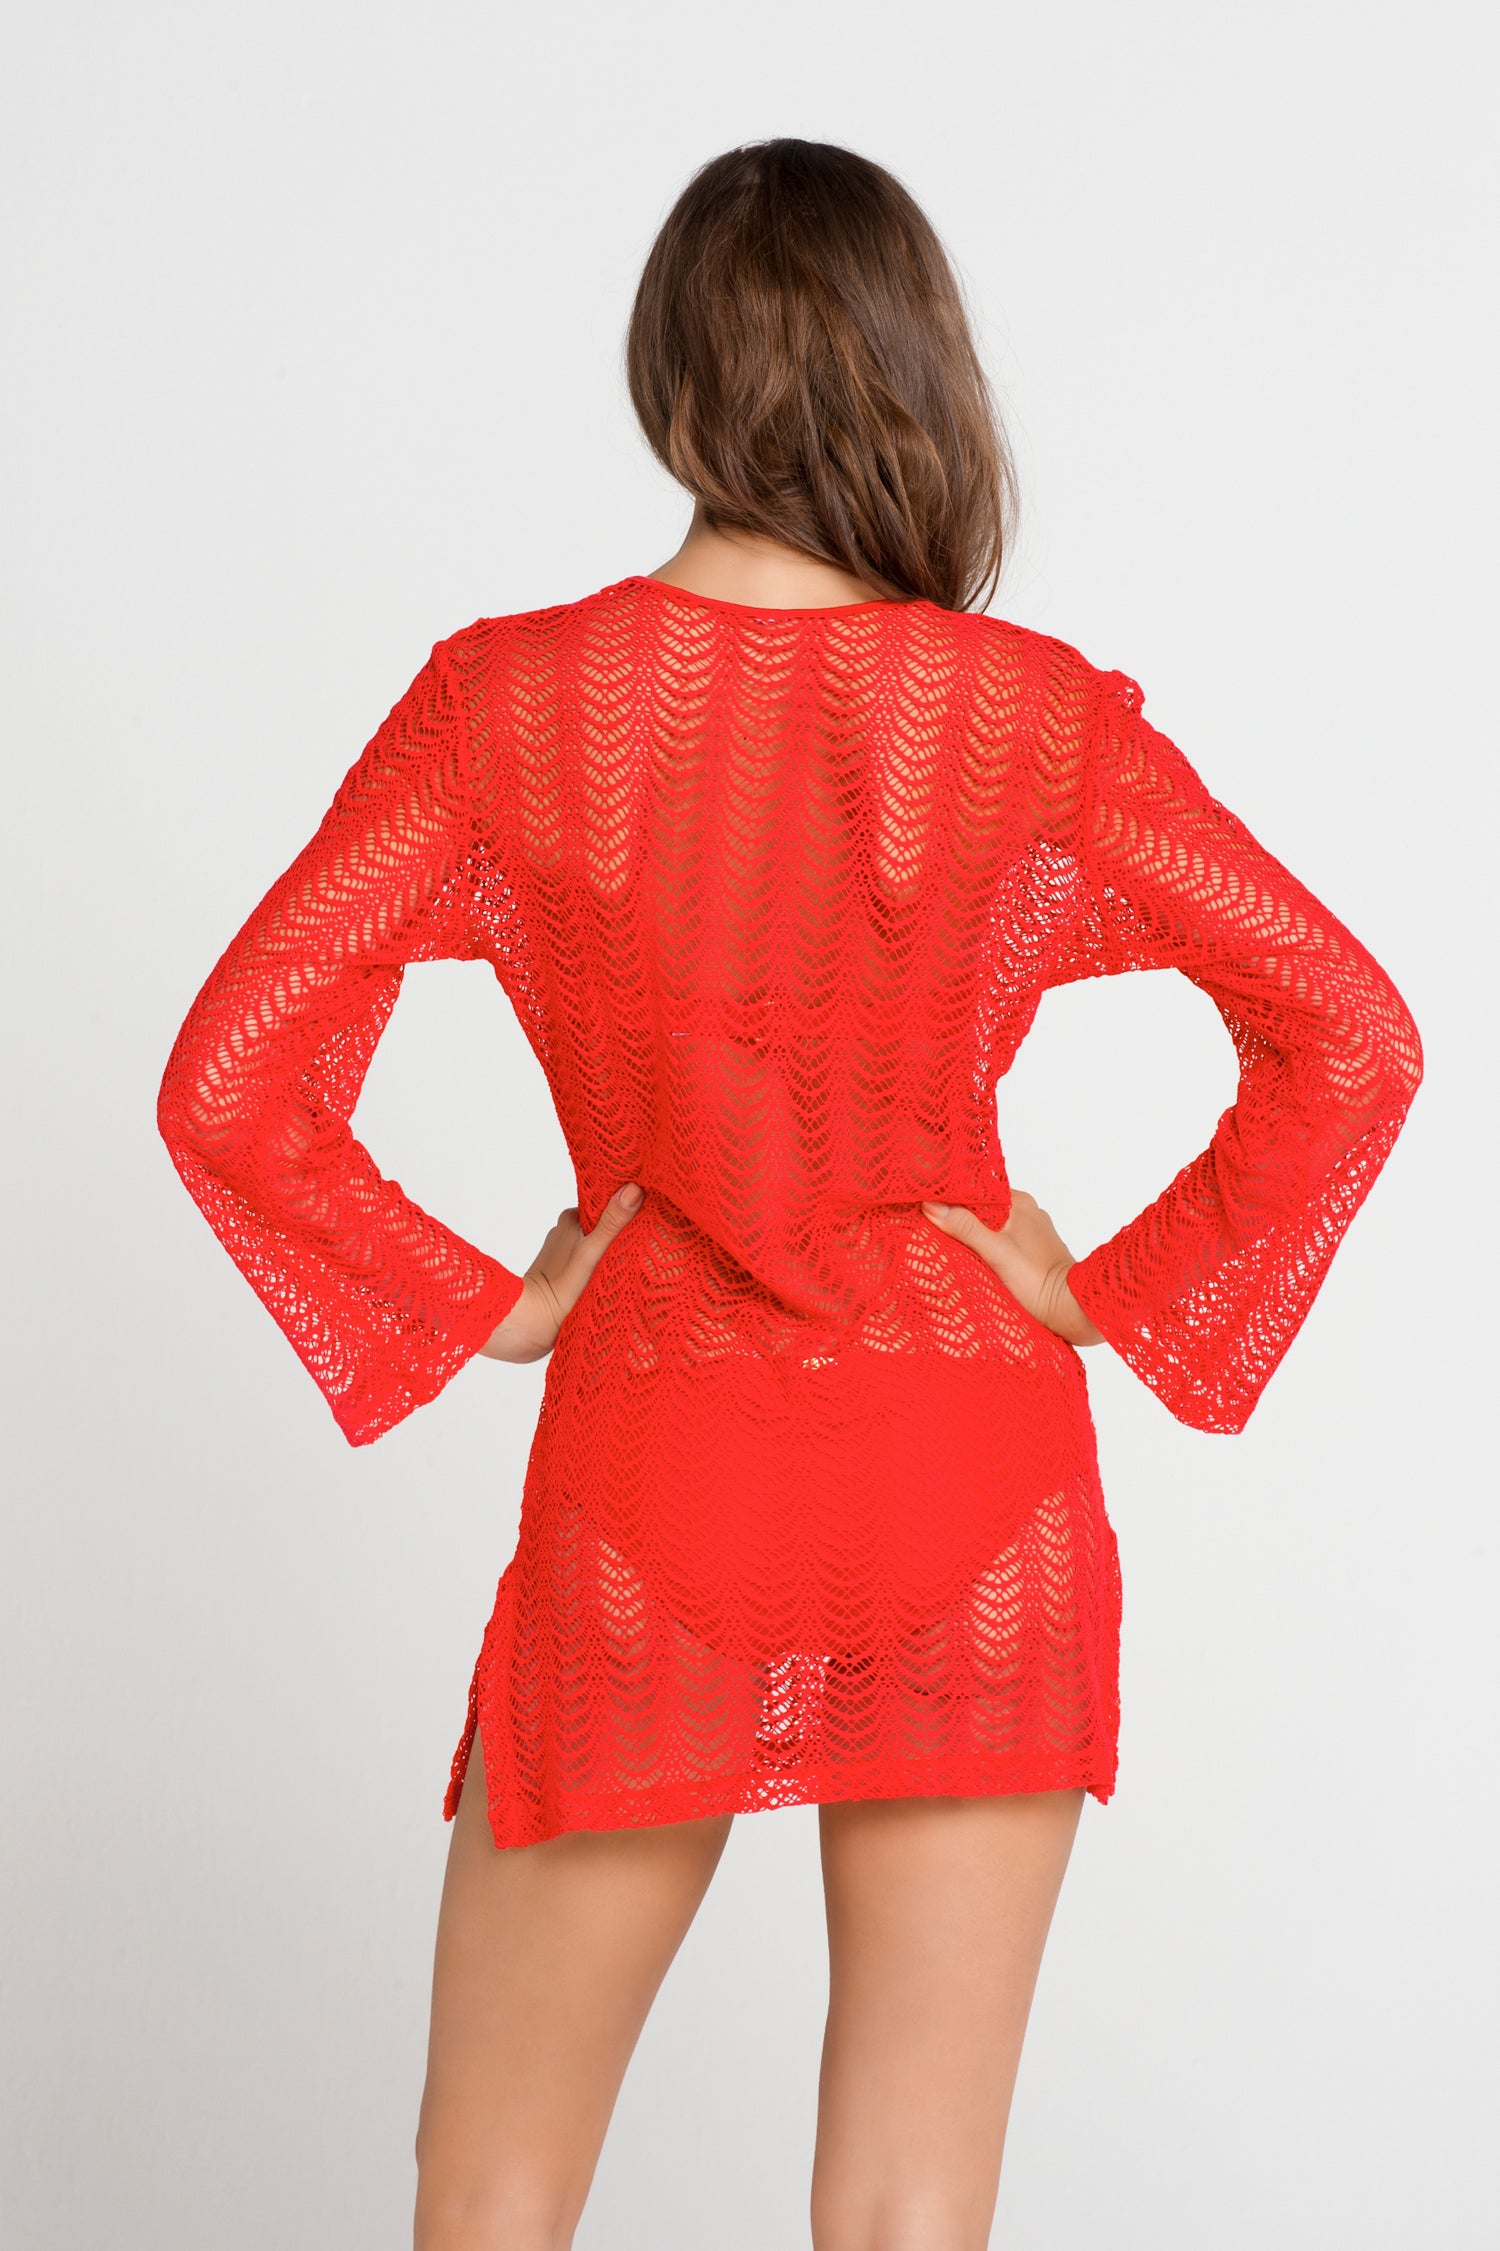 PASION Y ARENA - Plunge Dress • Luli Red